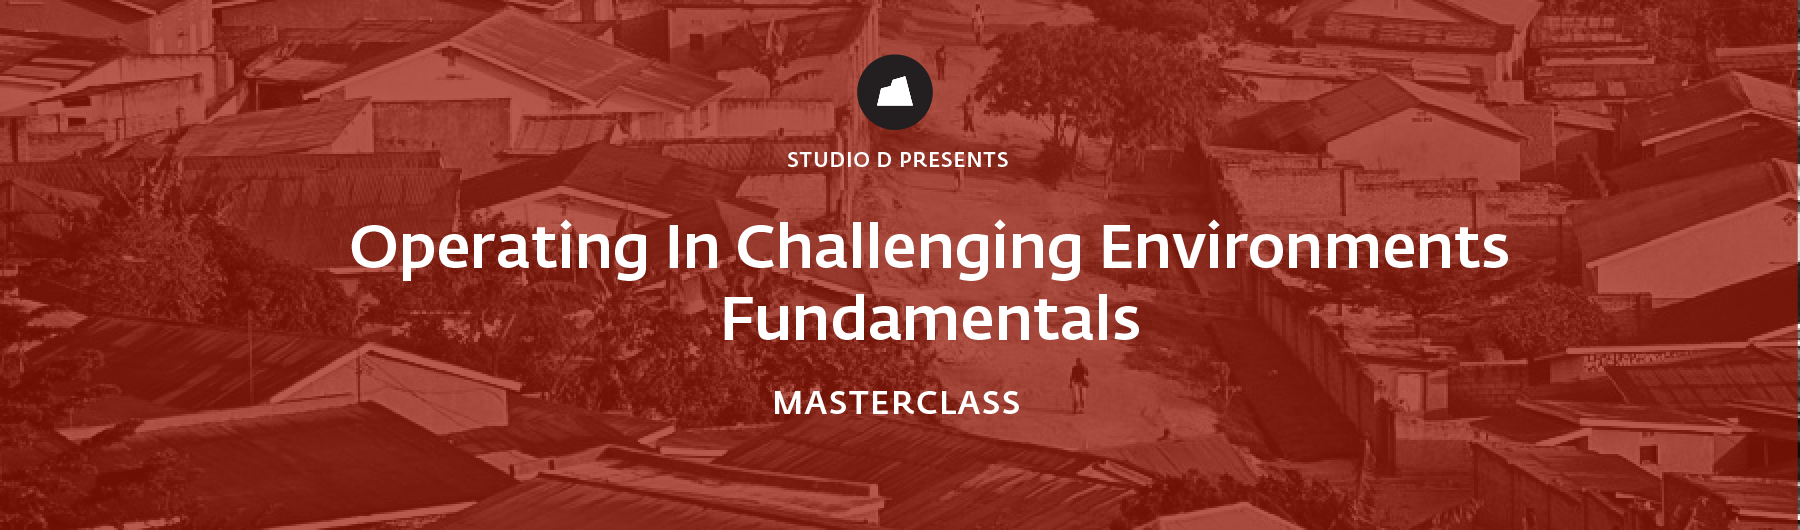 Operating in Challenging Environments, Fundamentals Masterclass, 23 April 2020, Singapore